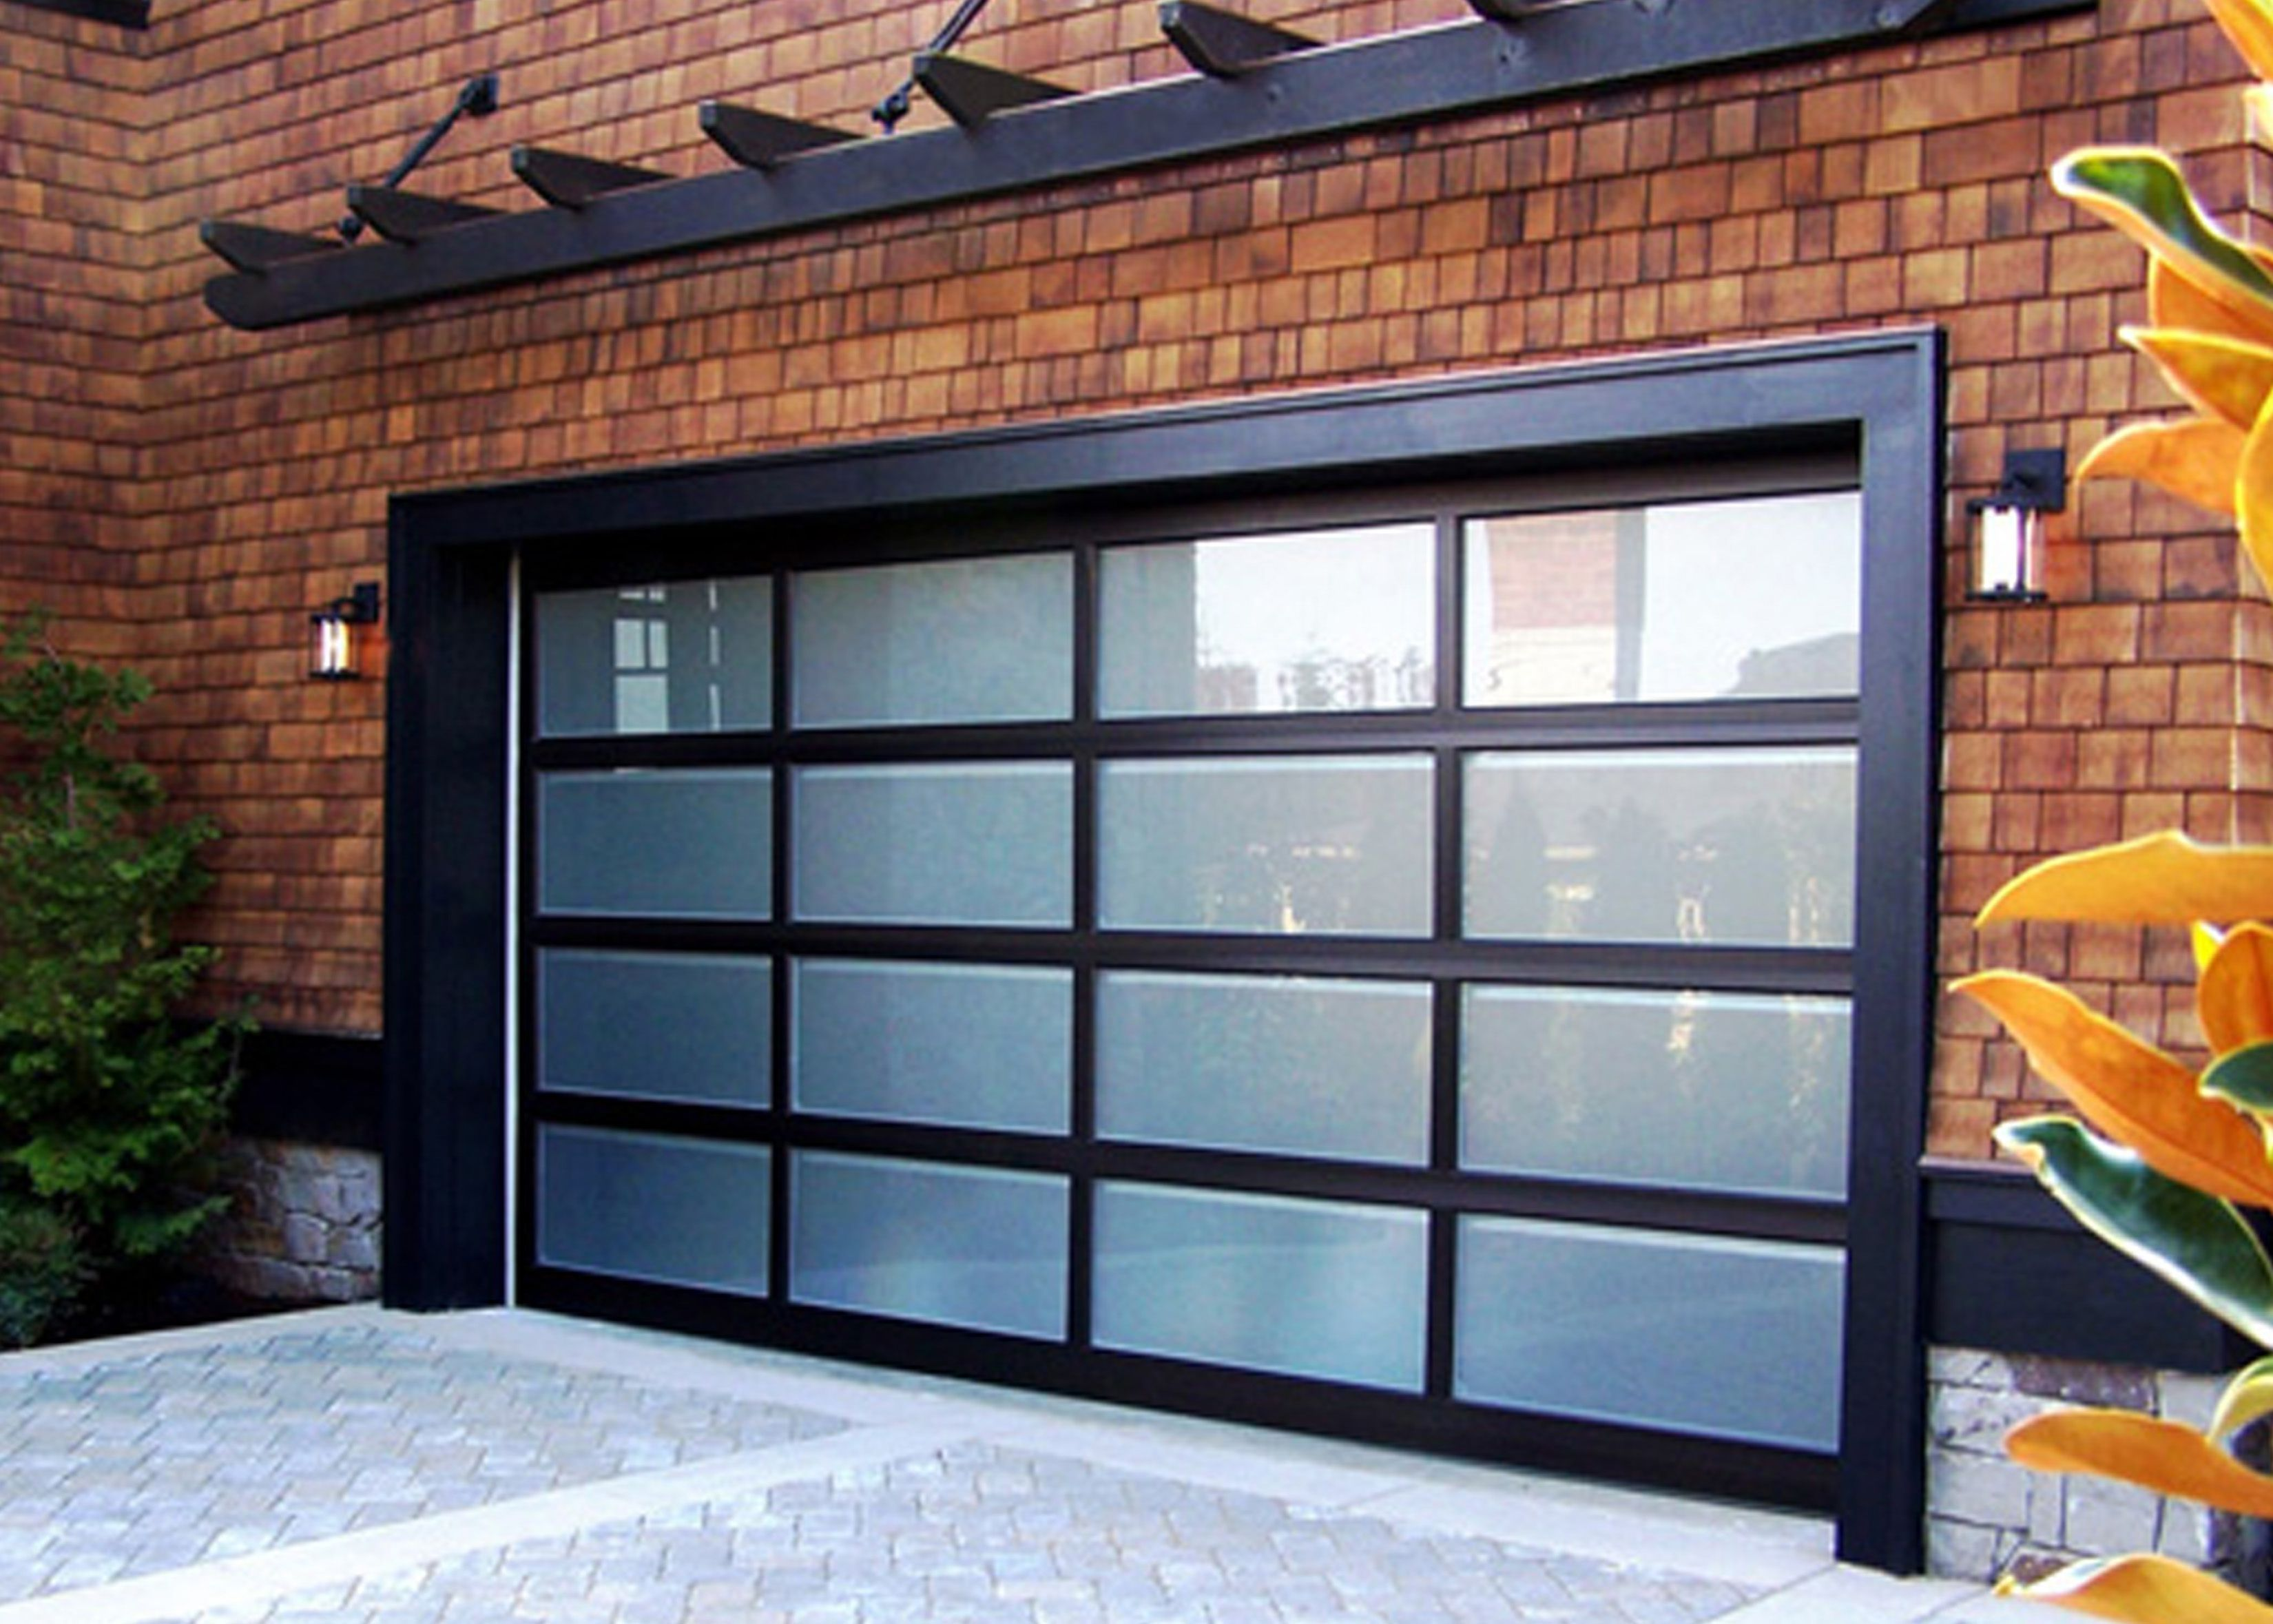 Cool Design Of The Black Wooden Gl Garage Door Ideas With Brown Bricks Wall Standard